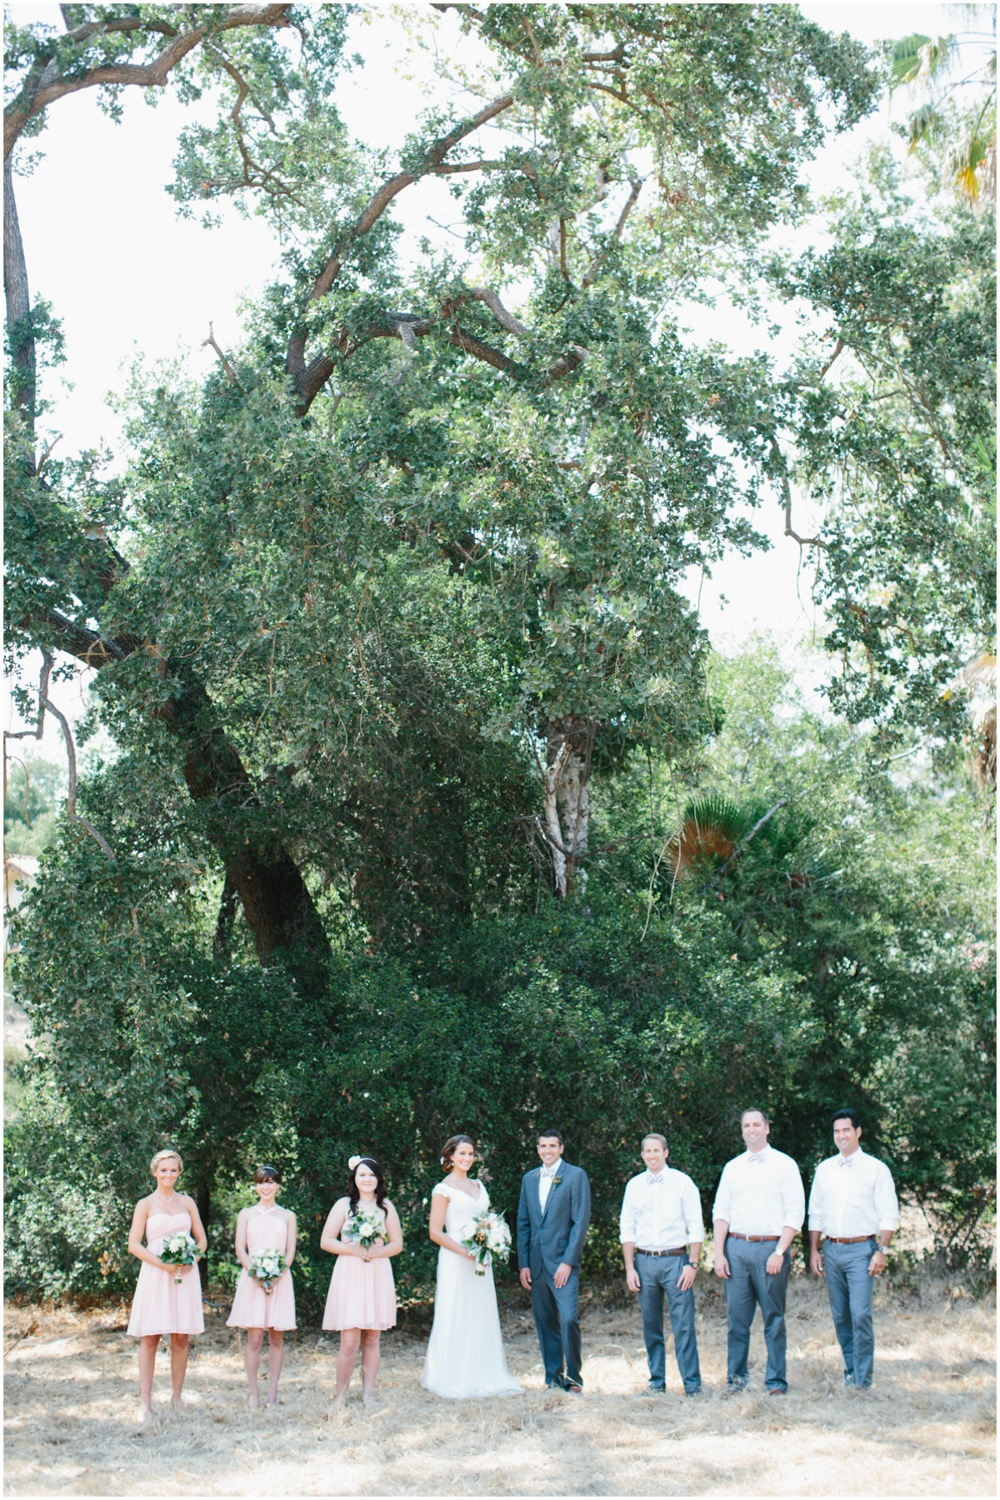 118_aaronyoungphotography_winery_wedding.jpg